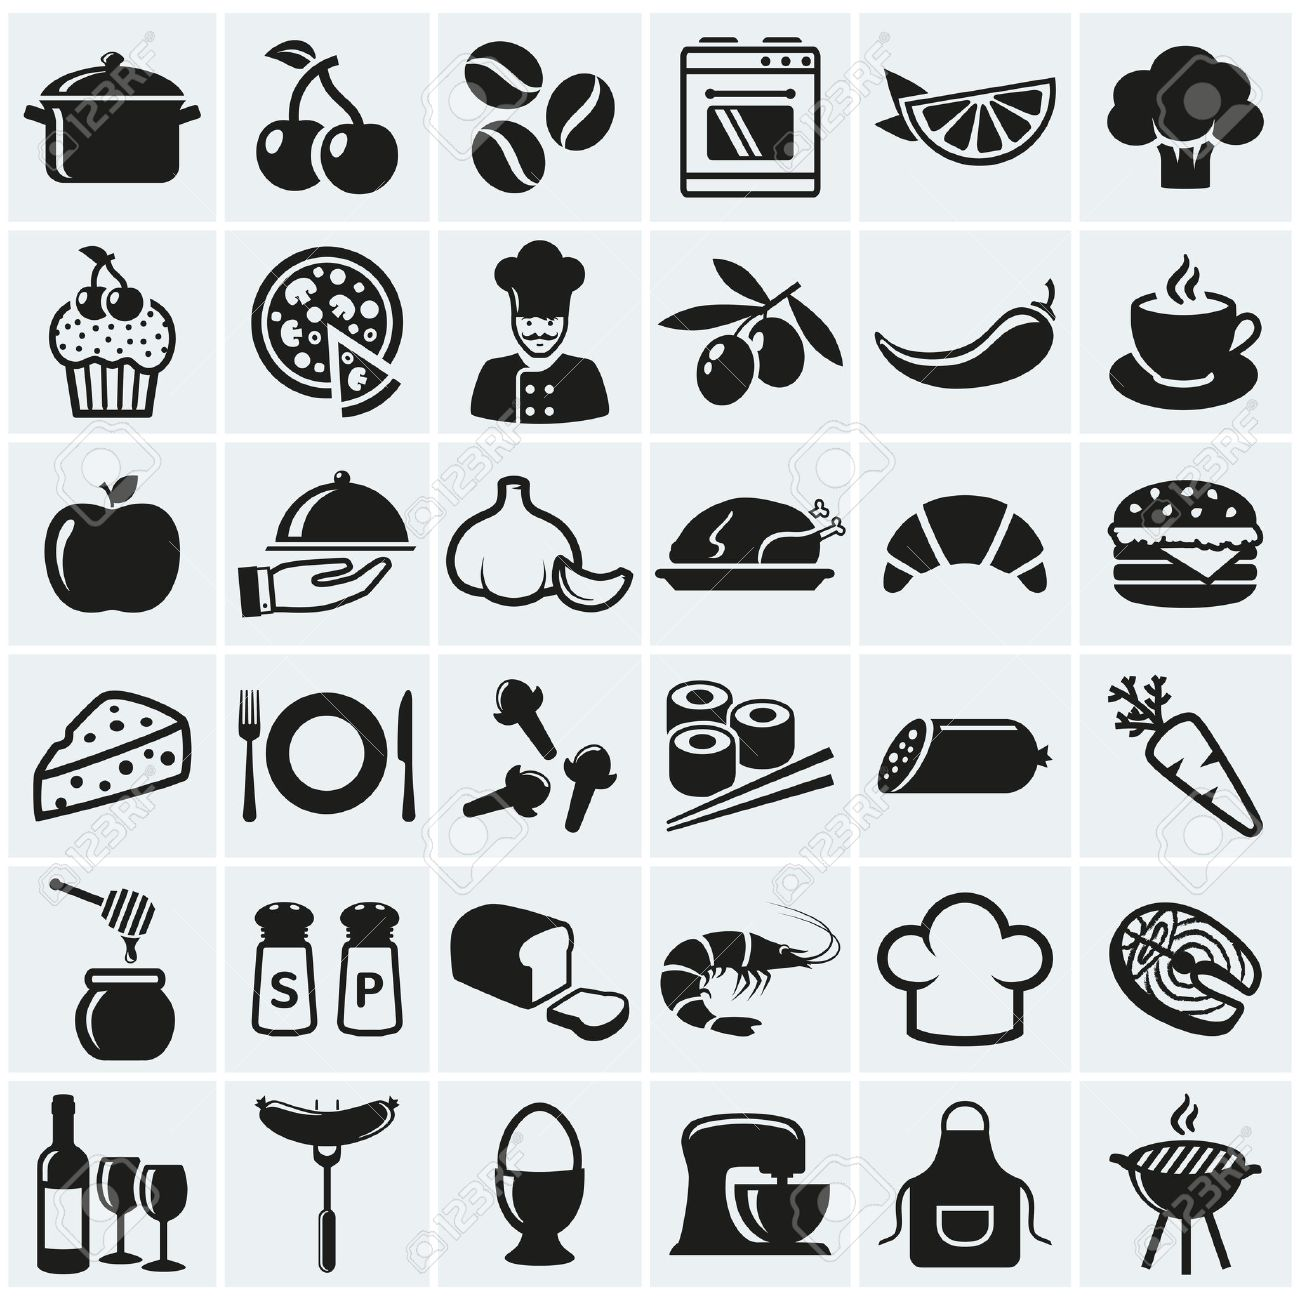 Food and cooking web icons. Set of black symbols for a culinary theme. Healthy and junk food, fruit and vegetables, spices, cooking utensils and more. Vector collection of silhouette design elements. - 49905449